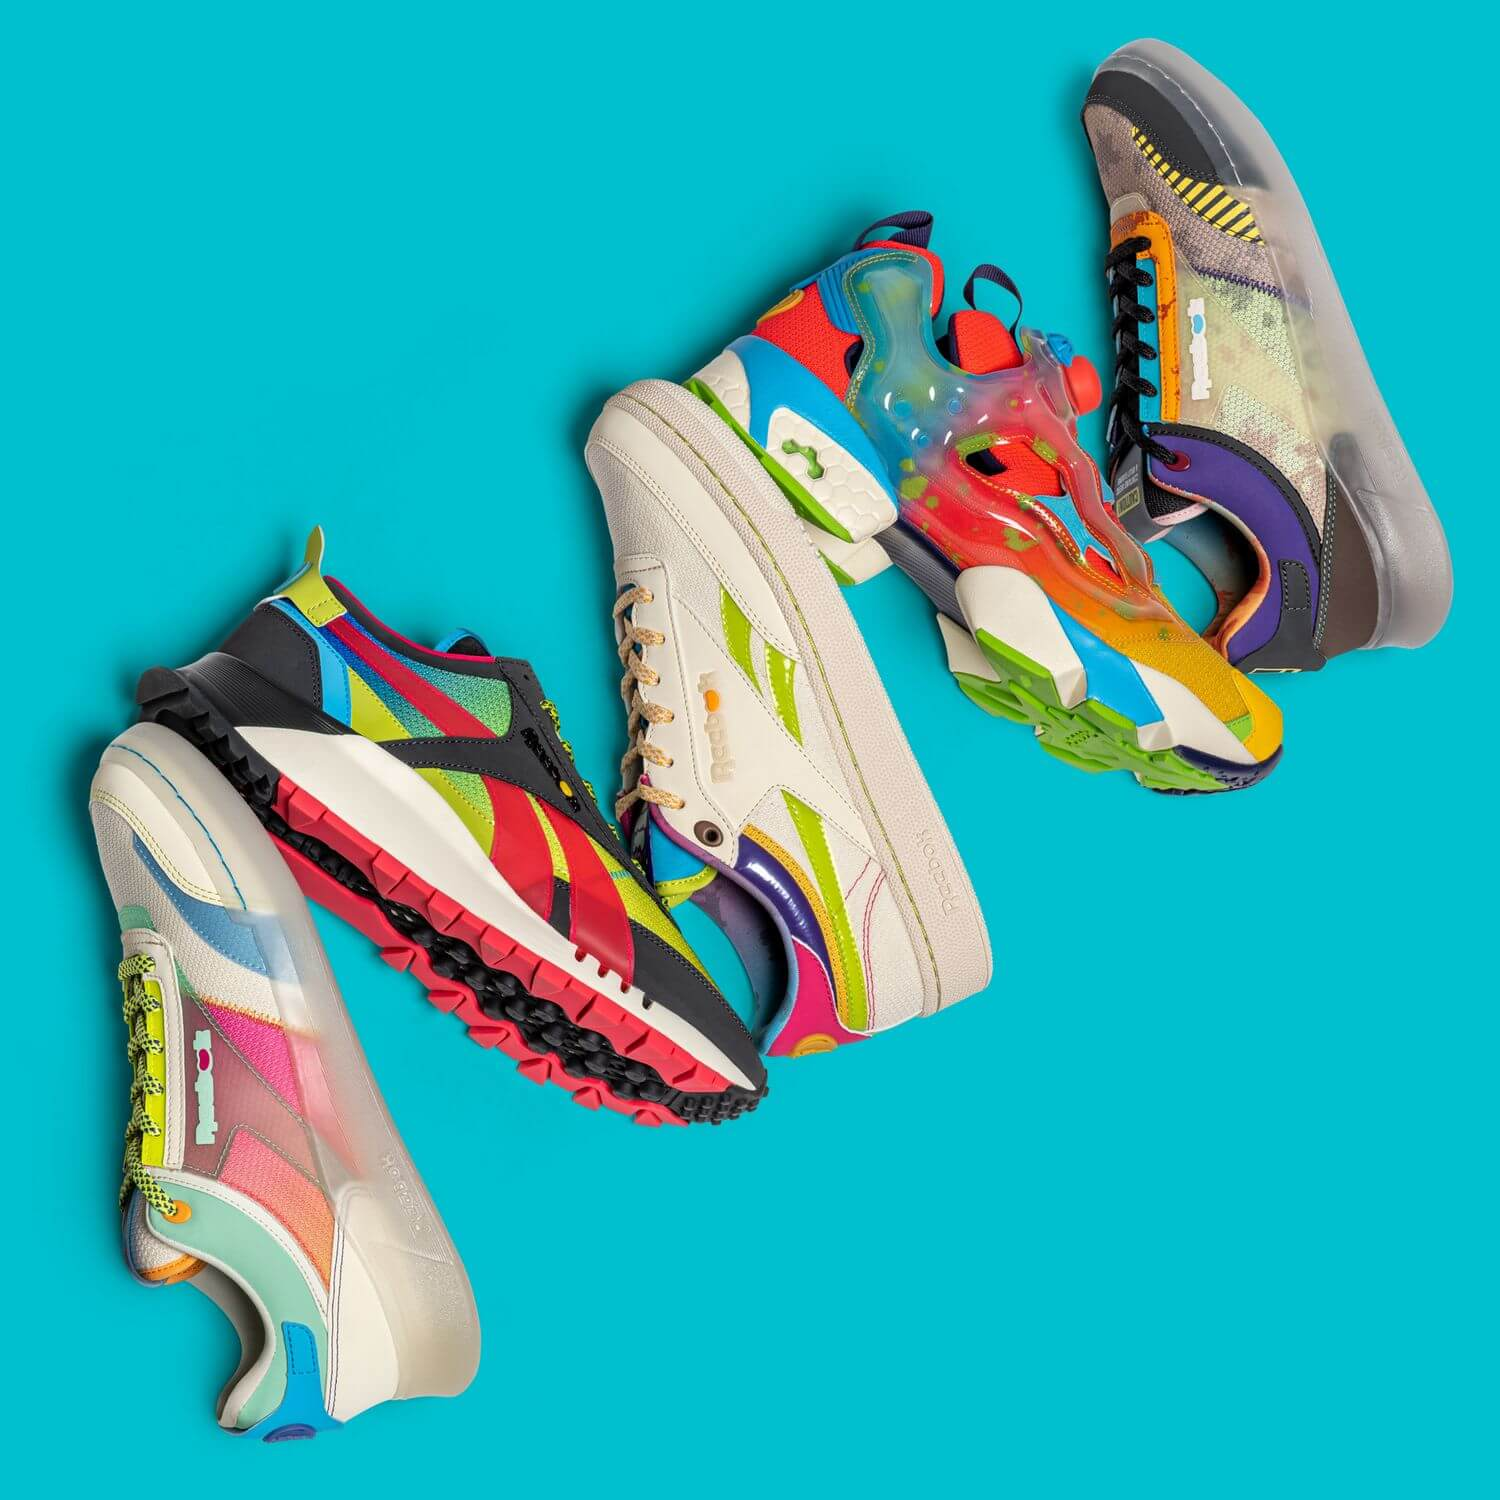 Reebok x Jelly Belly Sneaker Collection